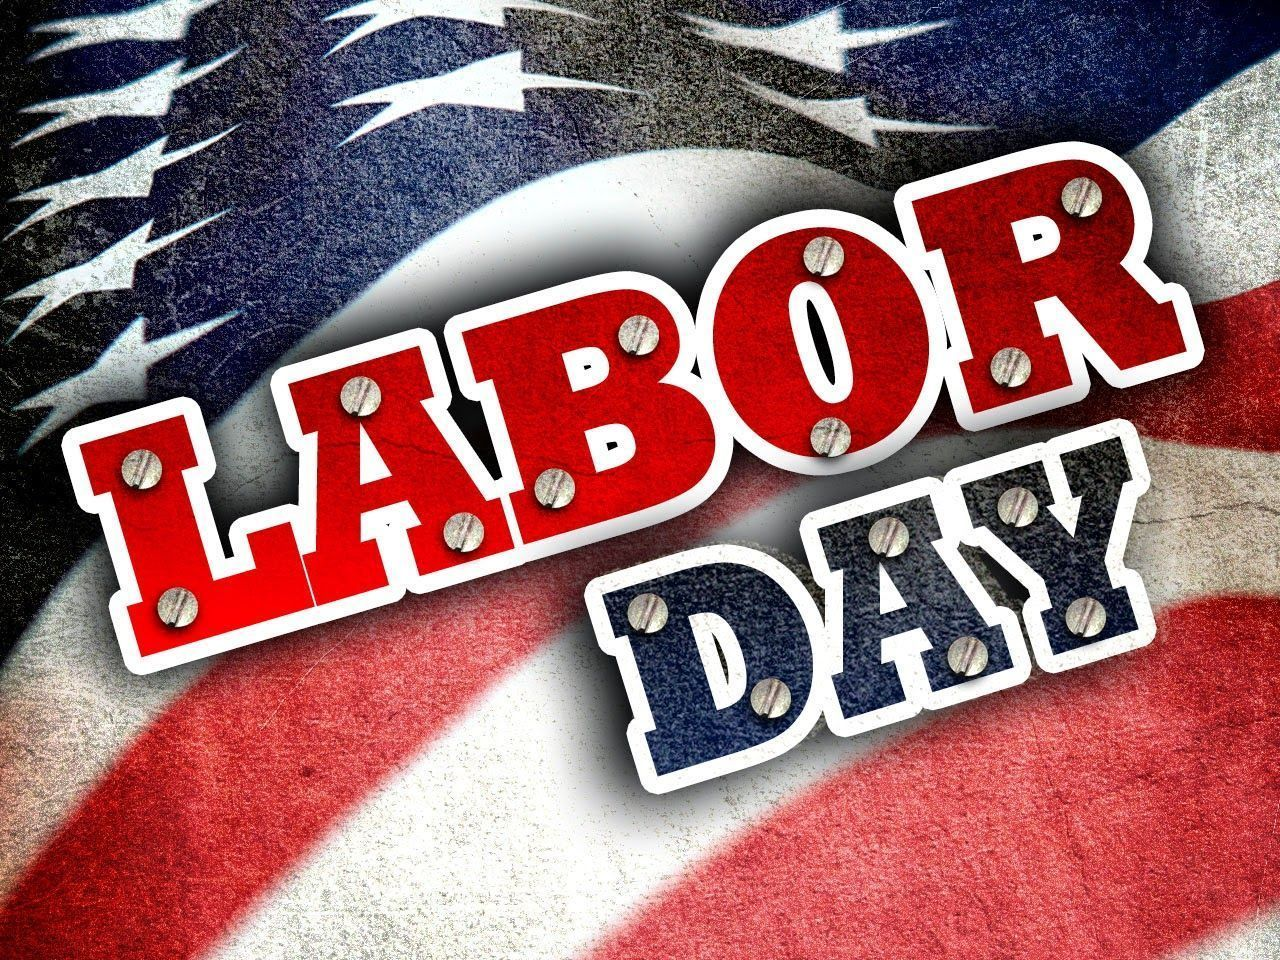 Now you can Download Labor Day Whatsapp Images 2014, Profile Pic, DP for free. Happy Labor Day Latest Pics for Whats app are available here. #happylabordayimages Now you can Download Labor Day Whatsapp Images 2014, Profile Pic, DP for free. Happy Labor Day Latest Pics for Whats app are available here. #happylabordayimages Now you can Download Labor Day Whatsapp Images 2014, Profile Pic, DP for free. Happy Labor Day Latest Pics for Whats app are available here. #happylabordayimages Now you can Do #labordayquotes